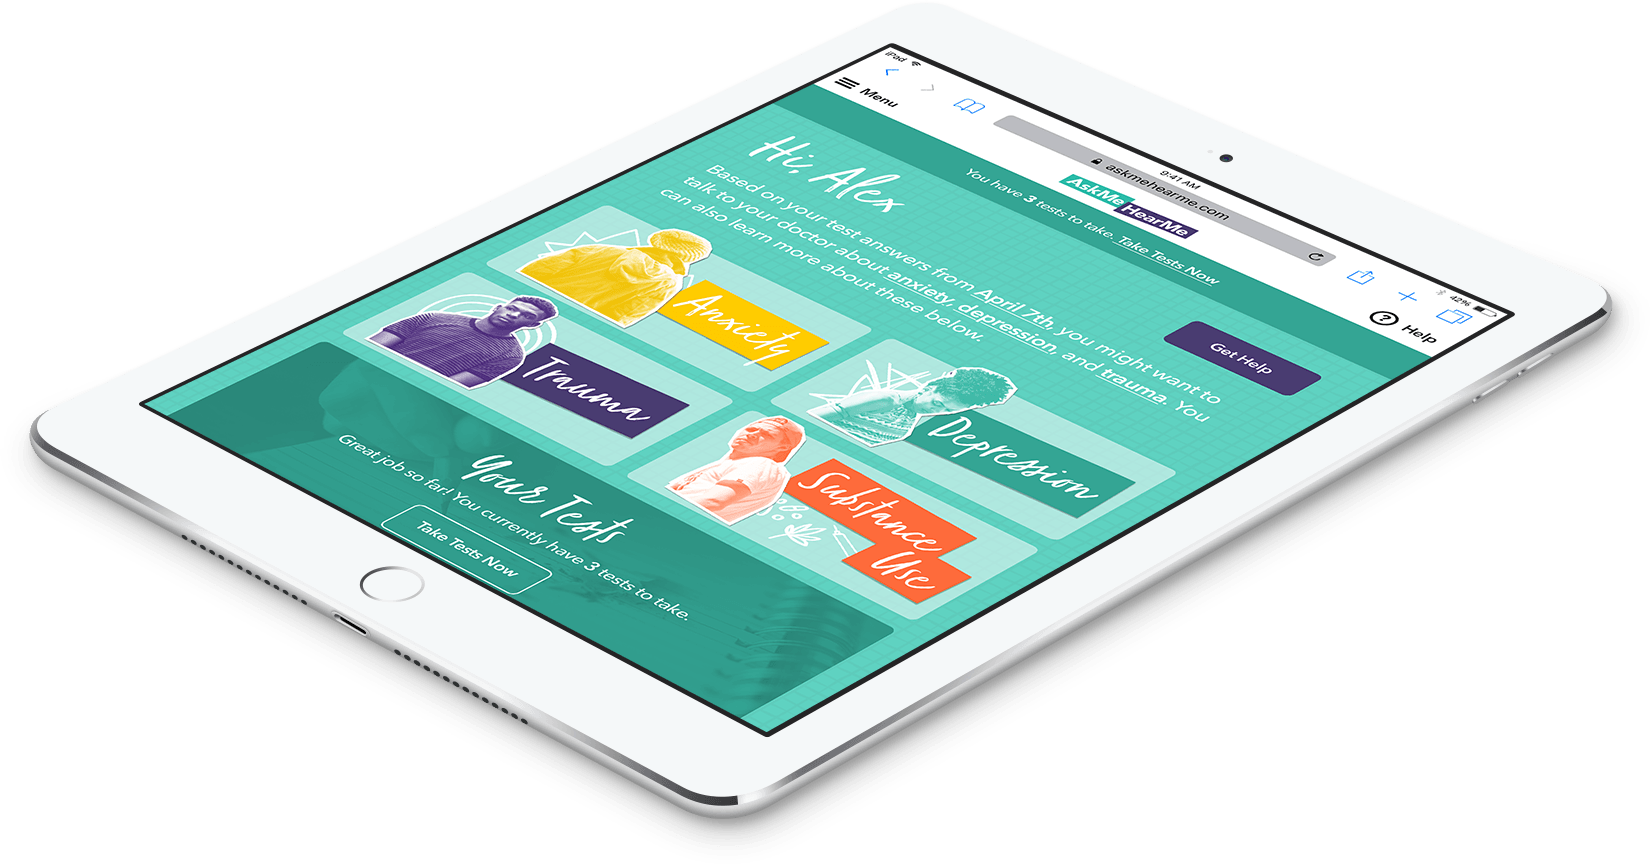 iPad Application for Healthcare